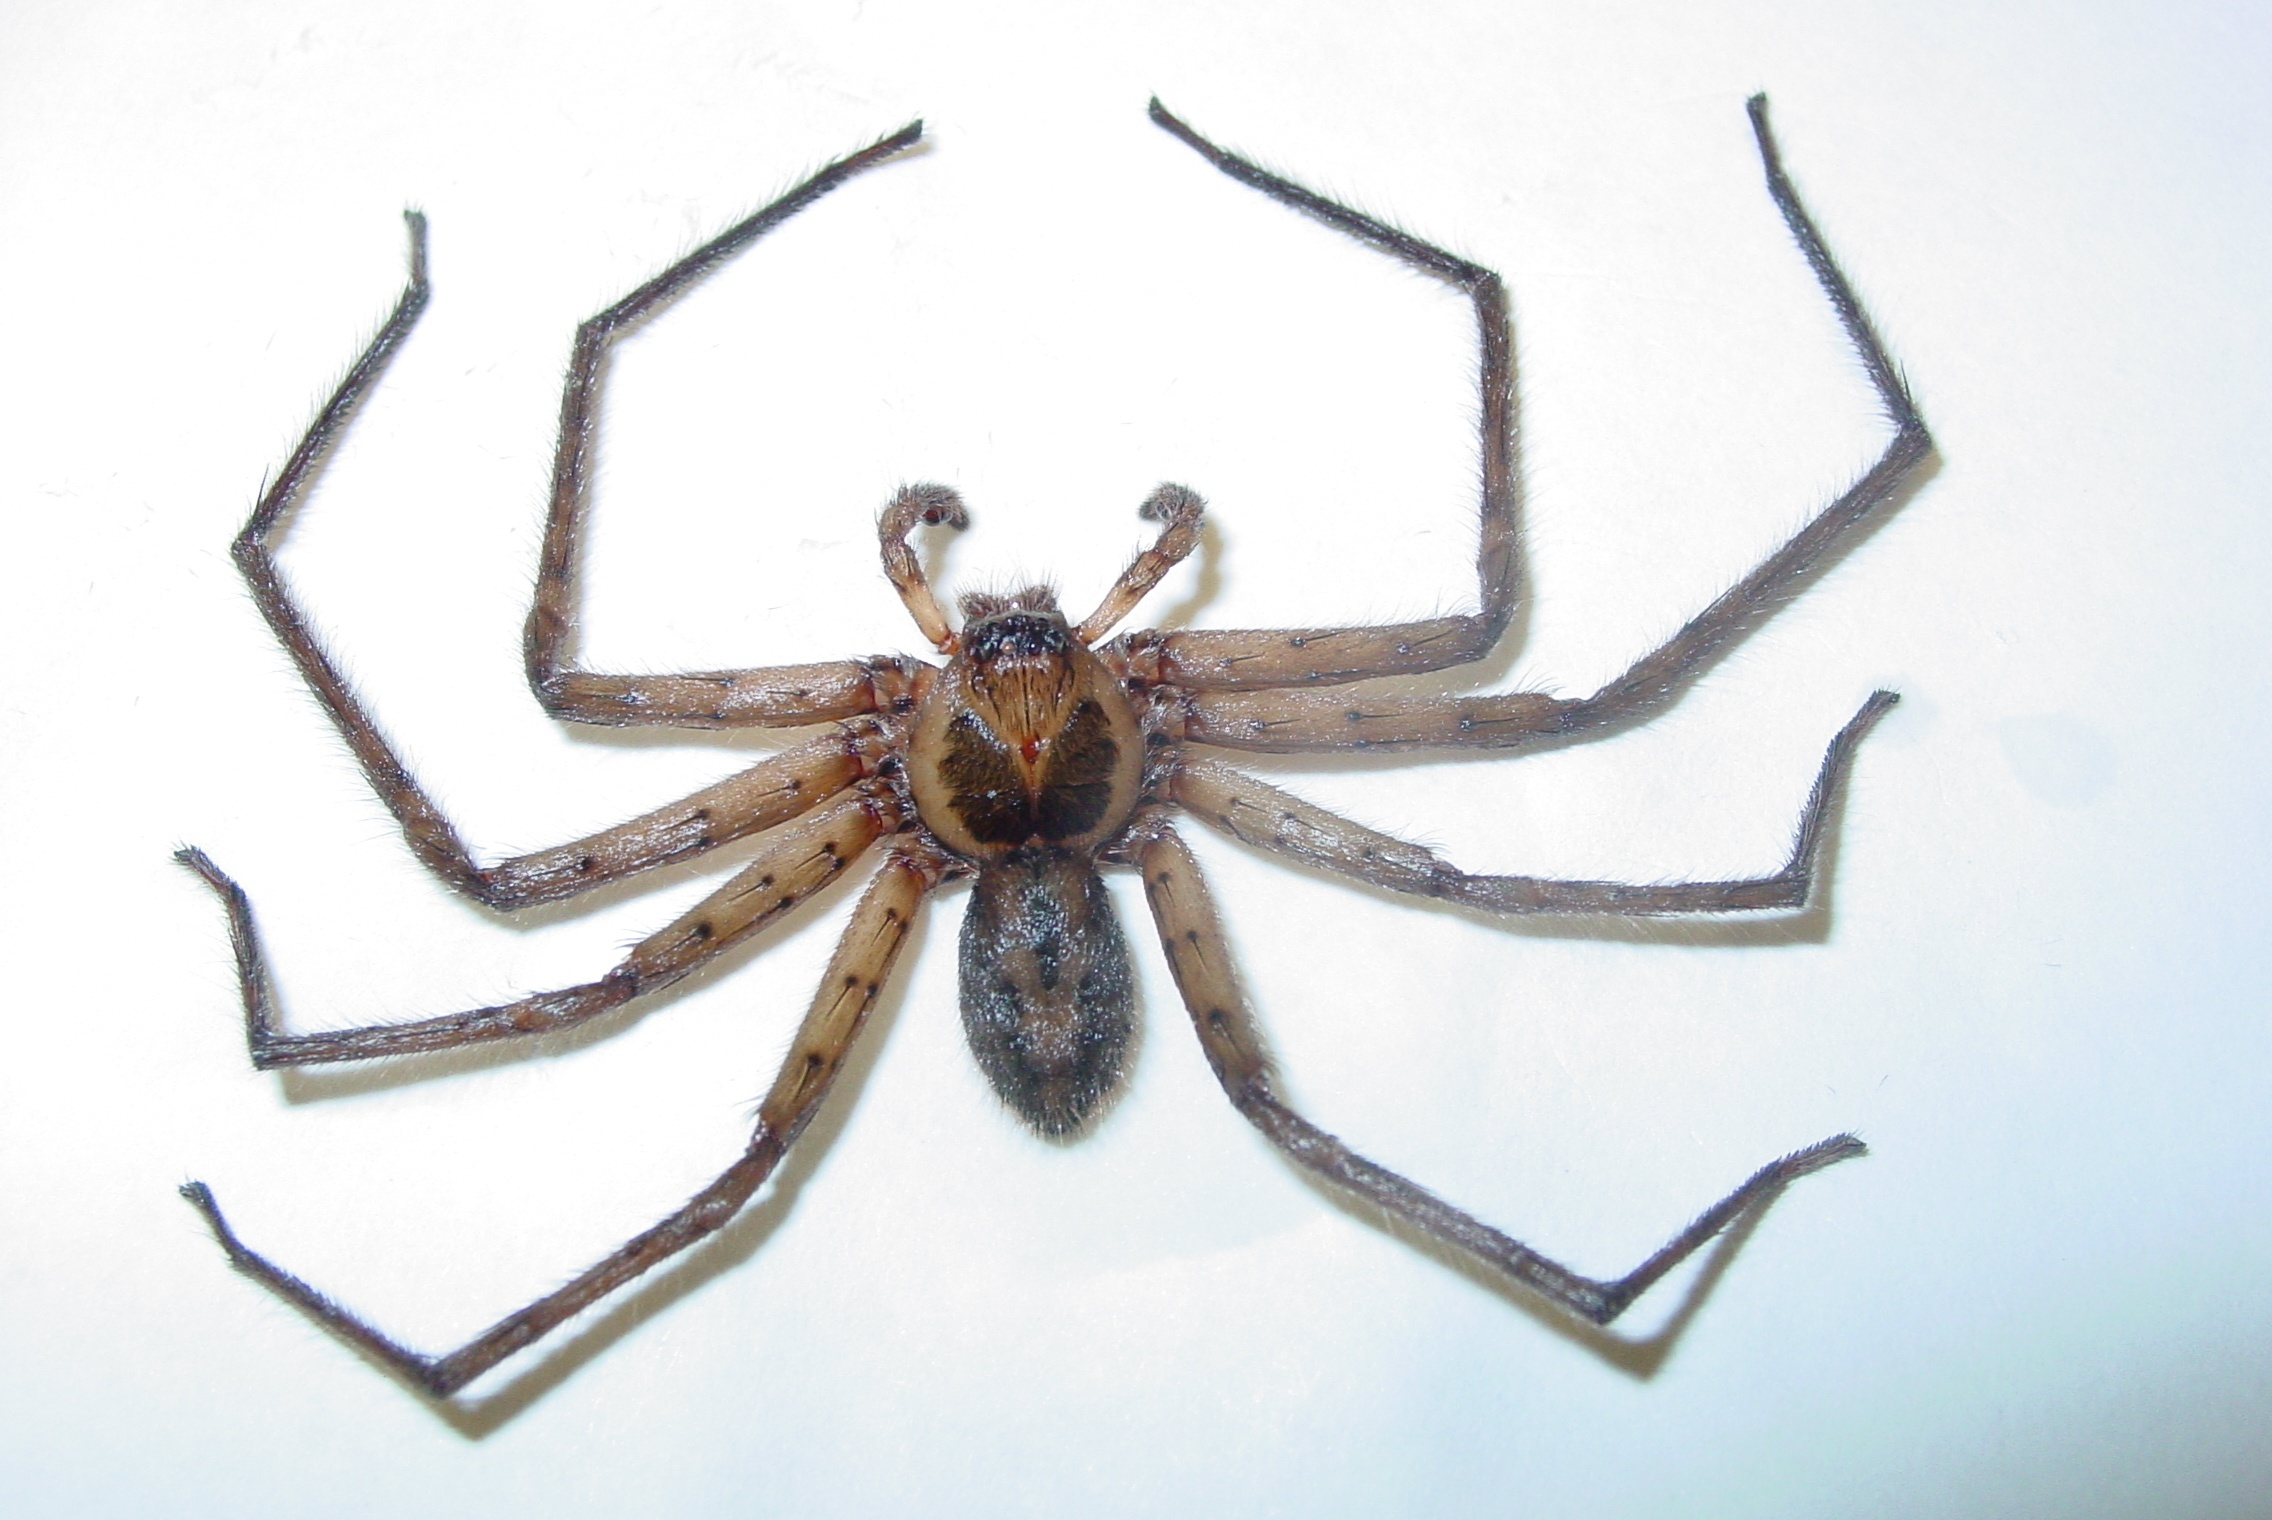 Pictures of florida house spiders